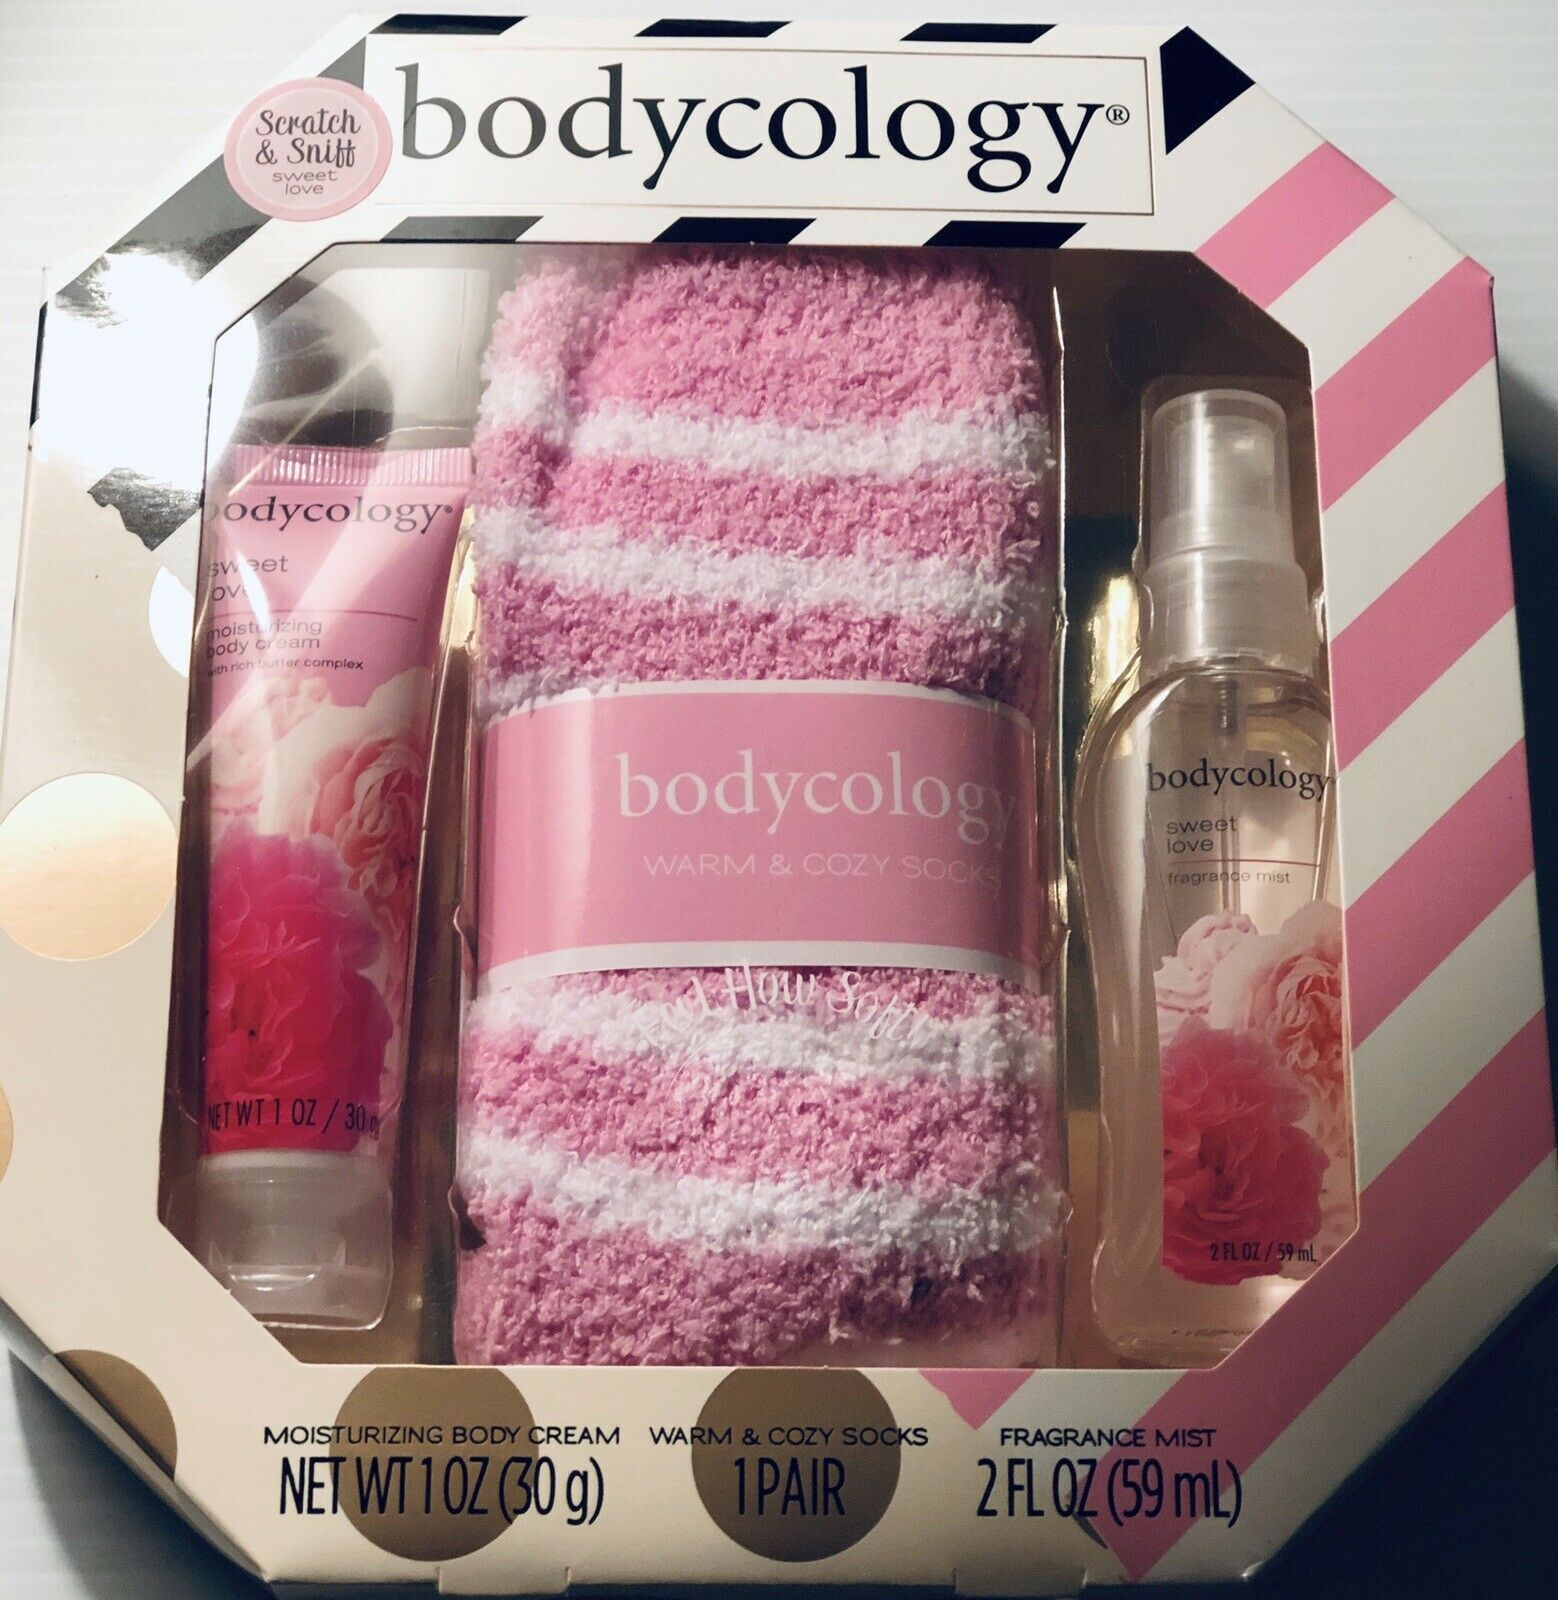 Bodycology Gift Set New In Box Sweet Love Smells Amazing! Socks soft! - $14.99